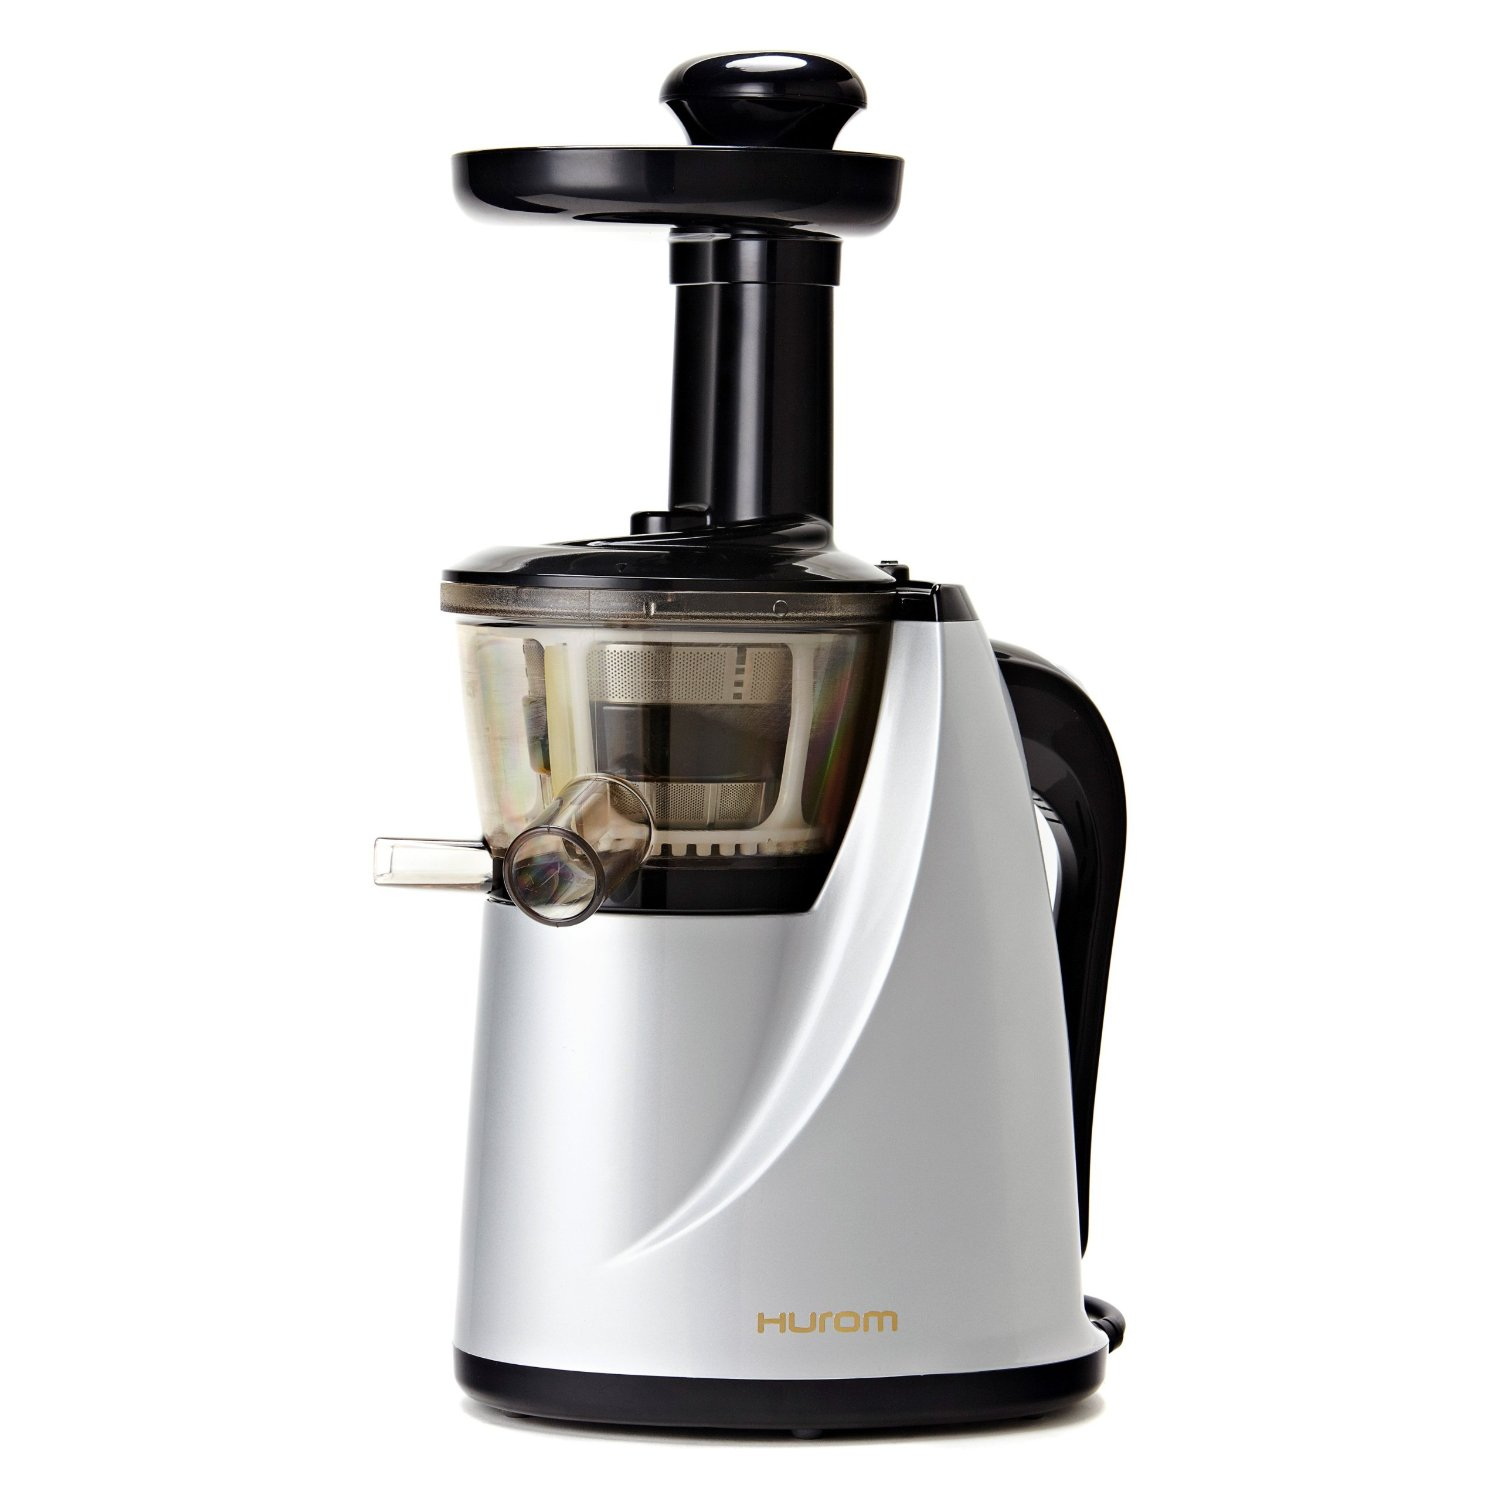 Slow Juicer Or Fast : Hurom HU-100 Masticating Slow Juicer Review - Best Cold Press Juicers